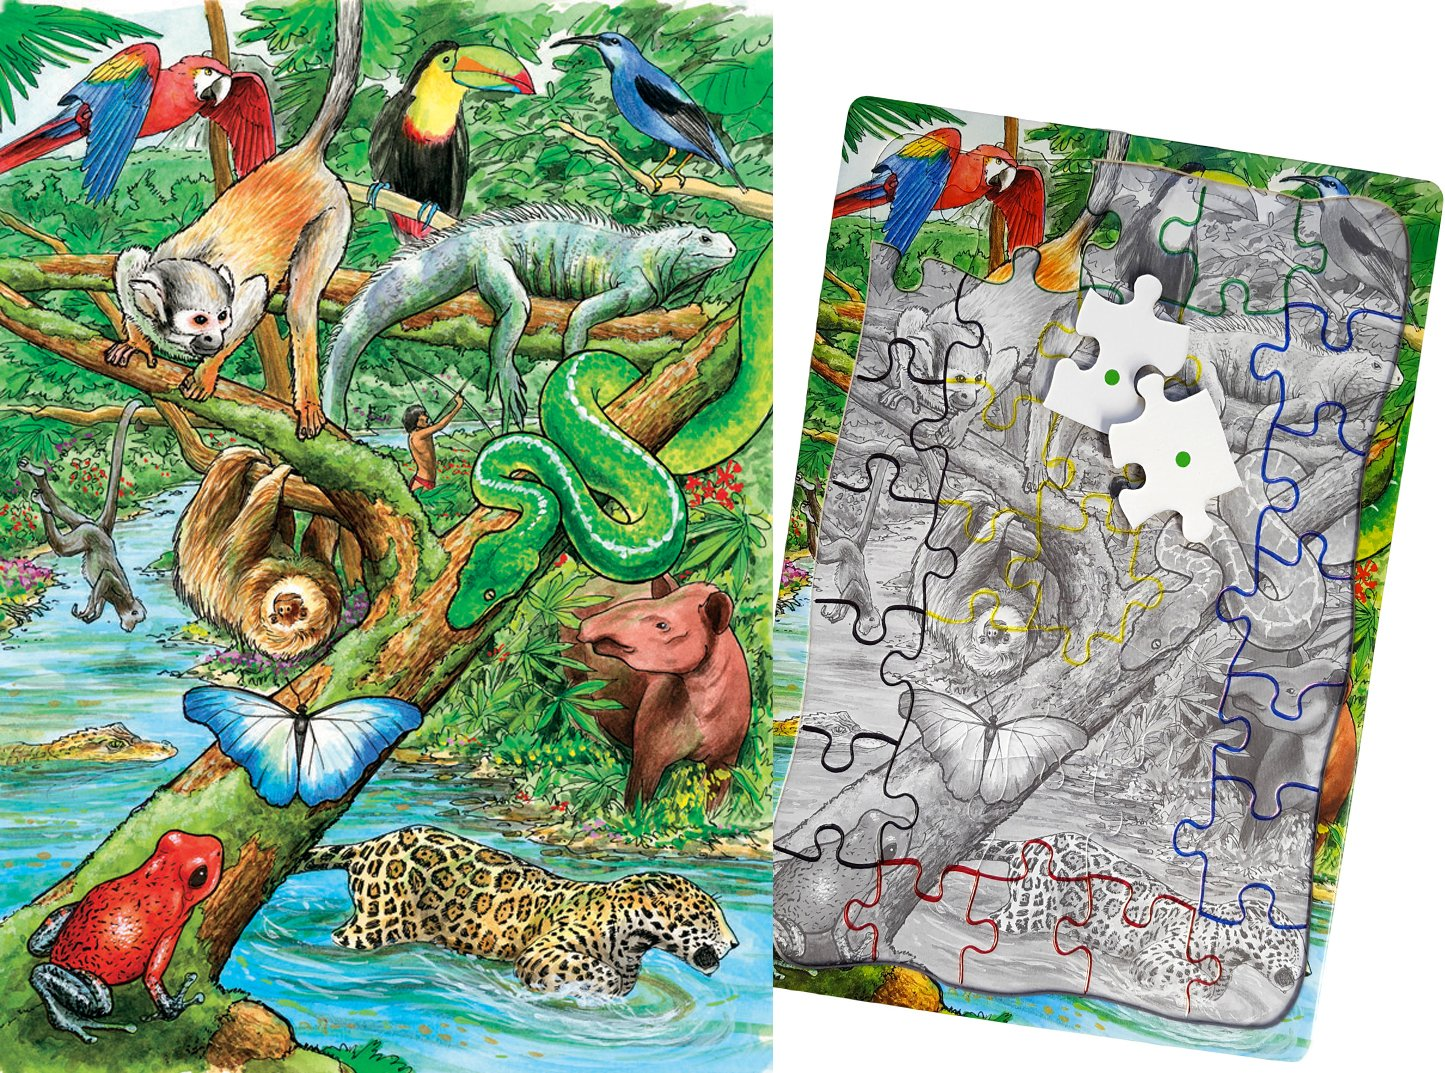 Games for Dementia and Alzheimers for Older Adults Puzzles Keeping Busy Life in The Rainforest 35 Piece Sequenced Jigsaw Puzzle Engaging Activities